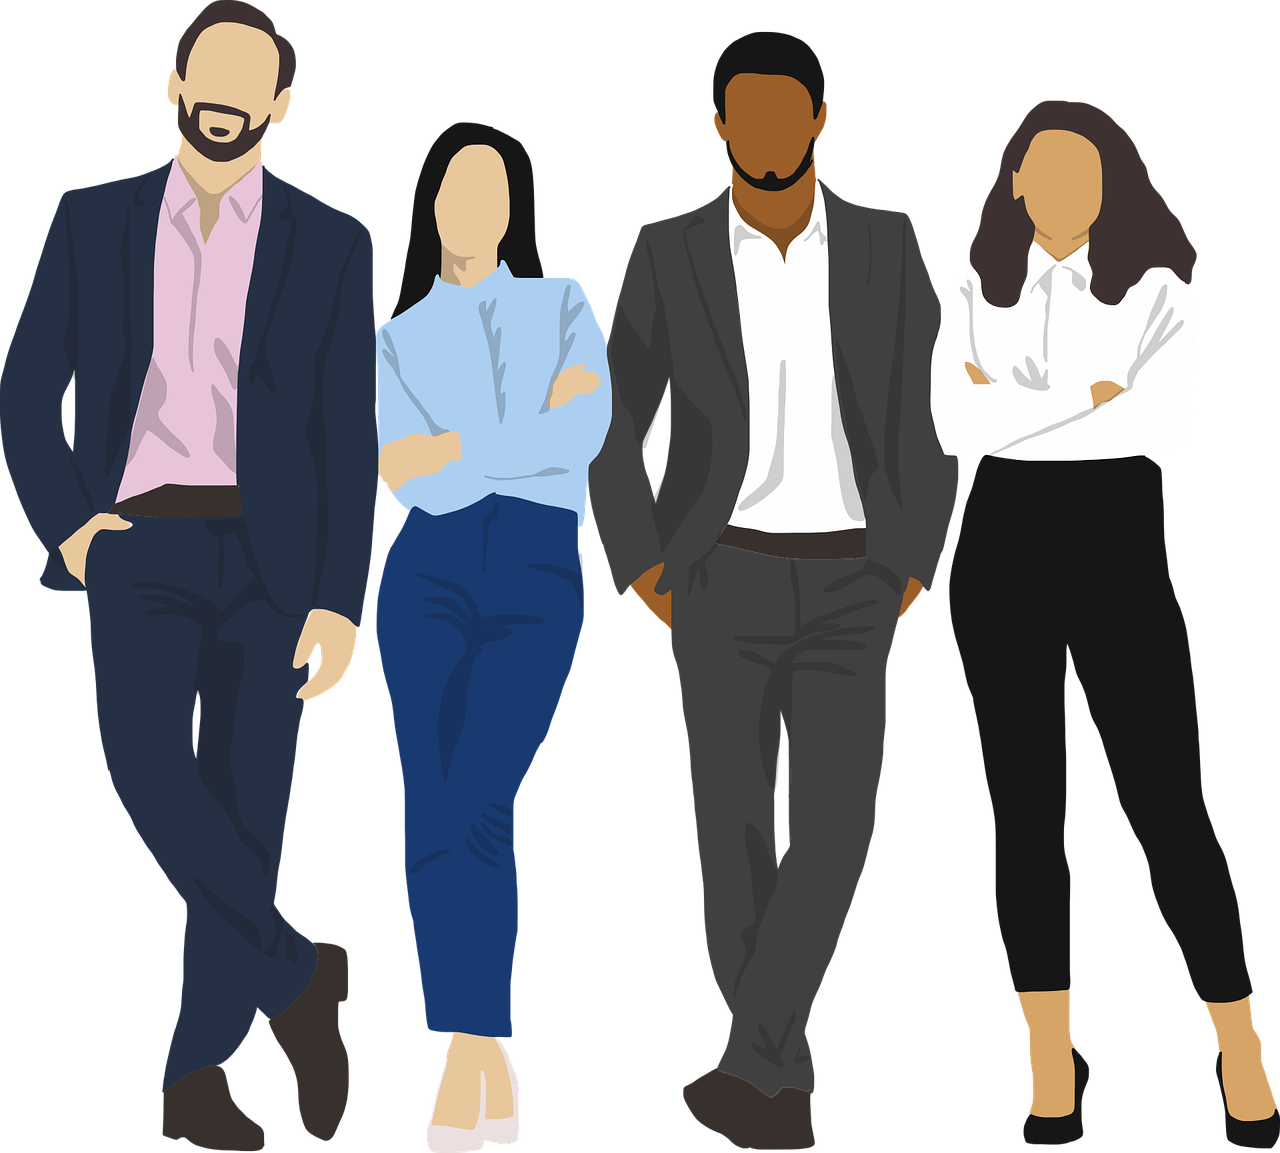 team young professionals free vector graphic on pixabay https creativecommons org licenses publicdomain